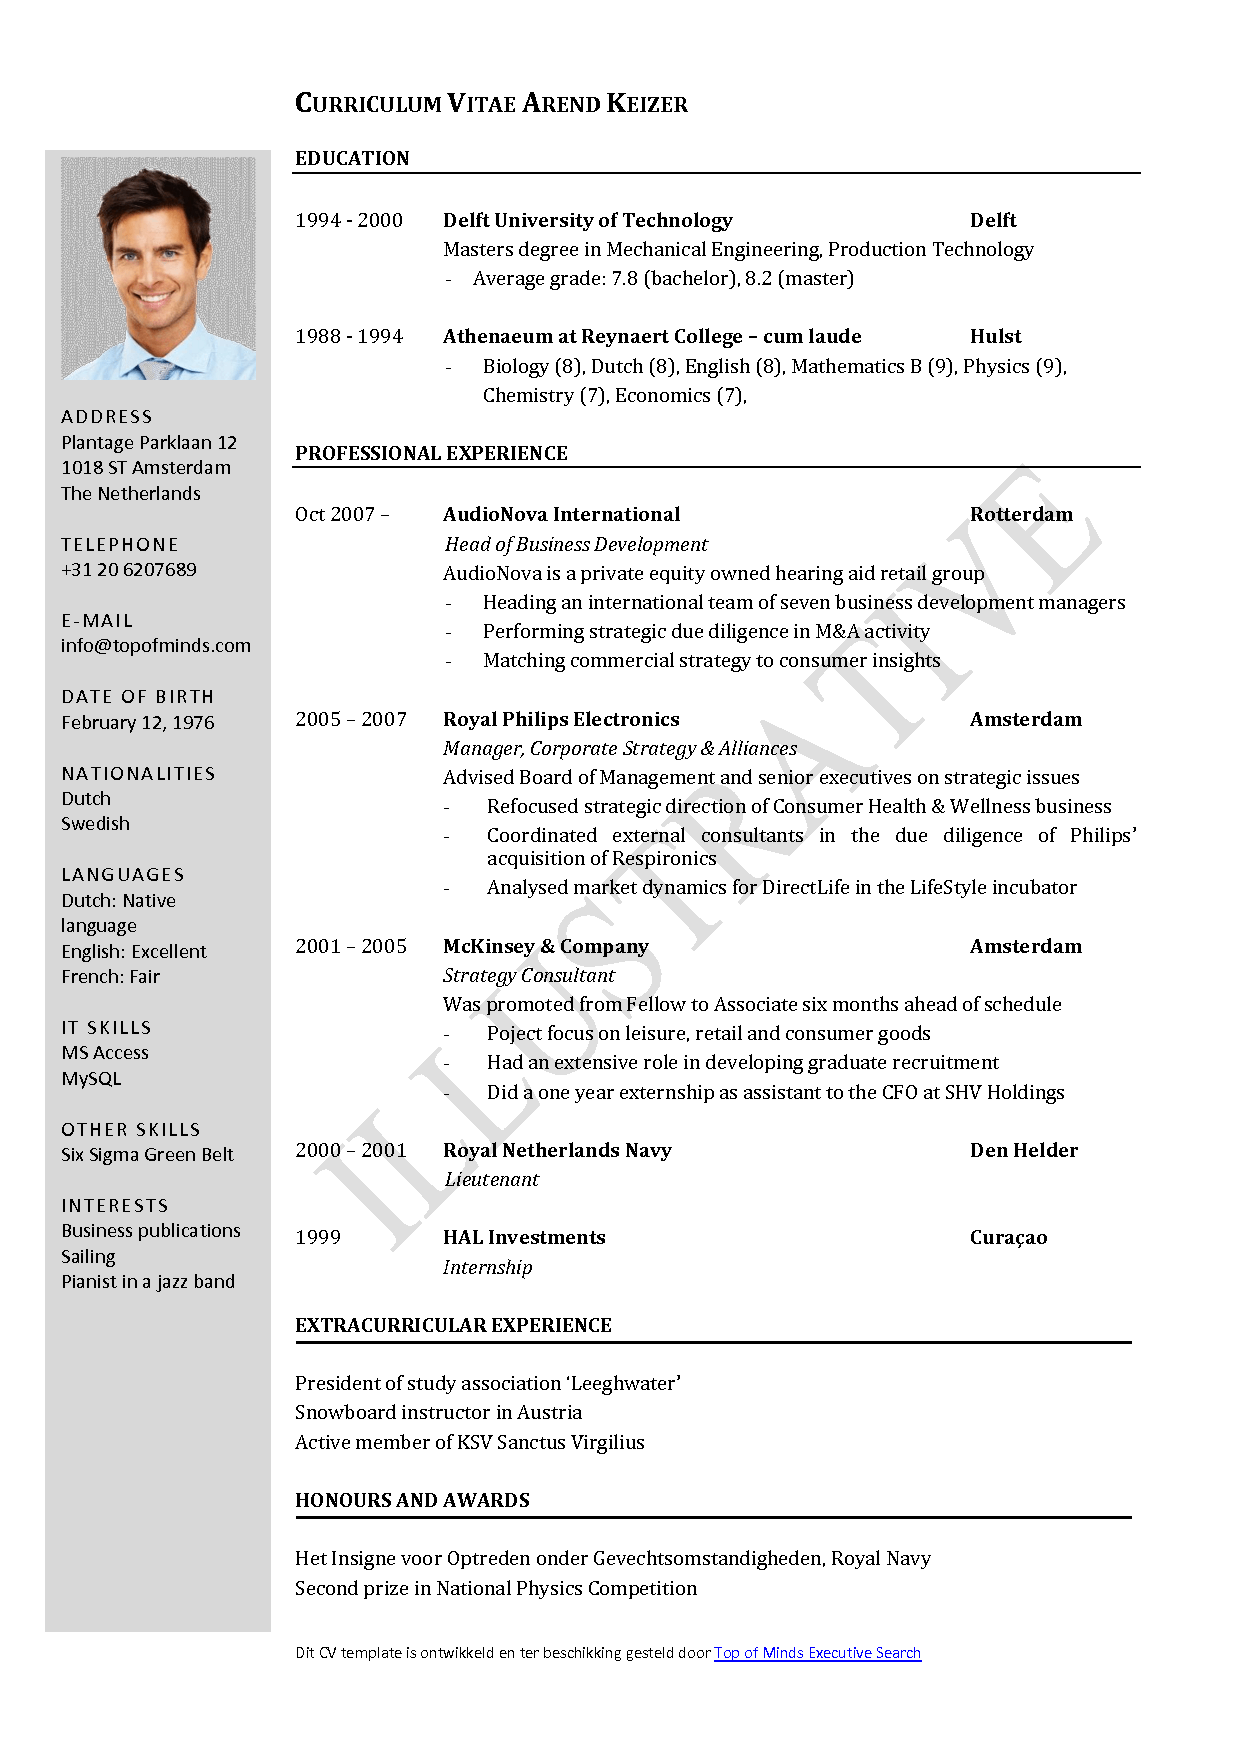 curriculum vitae format sample Korestjovenesambientecasco